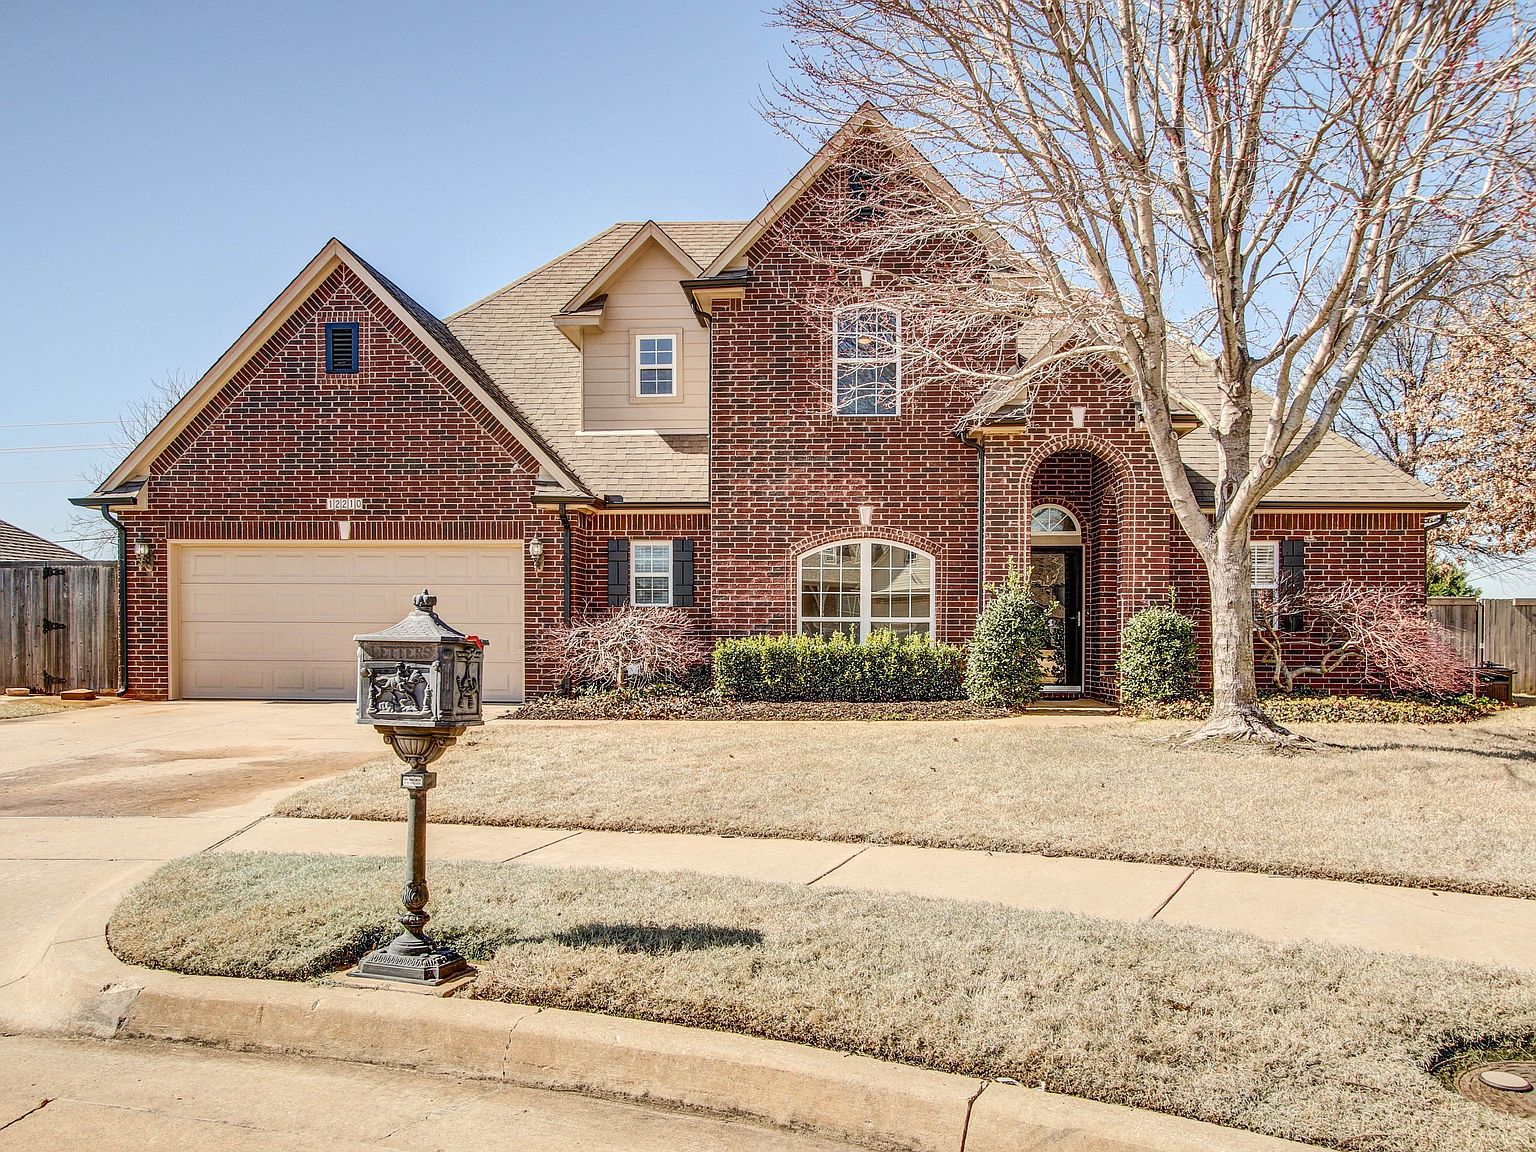 12210 S 98th East Ave Bixby Ok 74008 Zillow